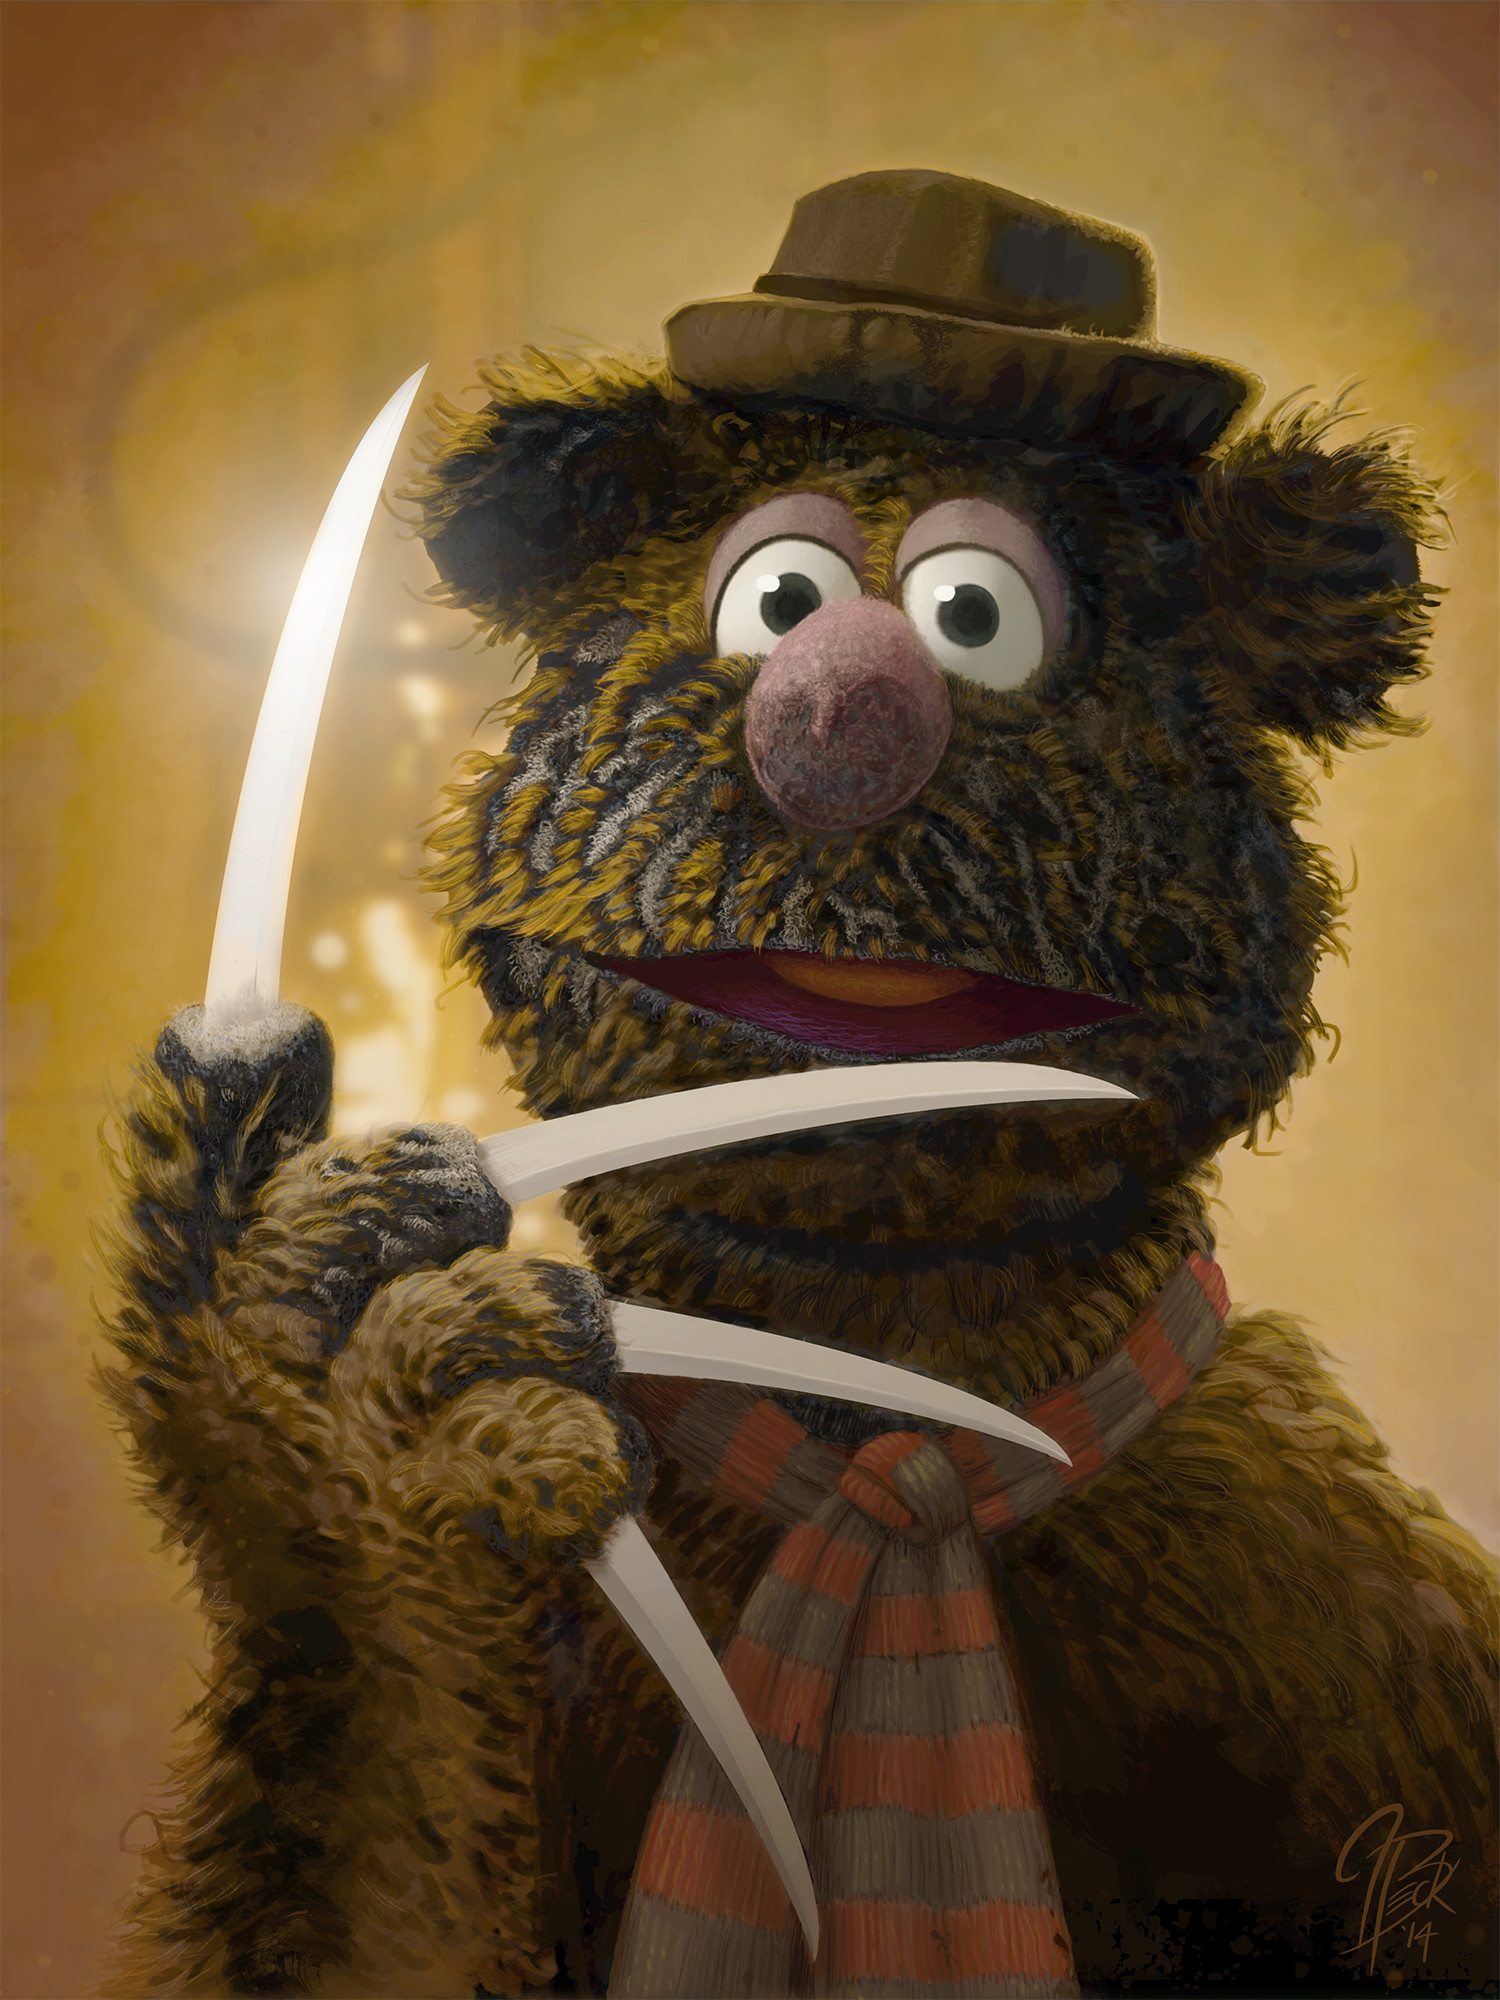 Fozzie as Freddy Krueger